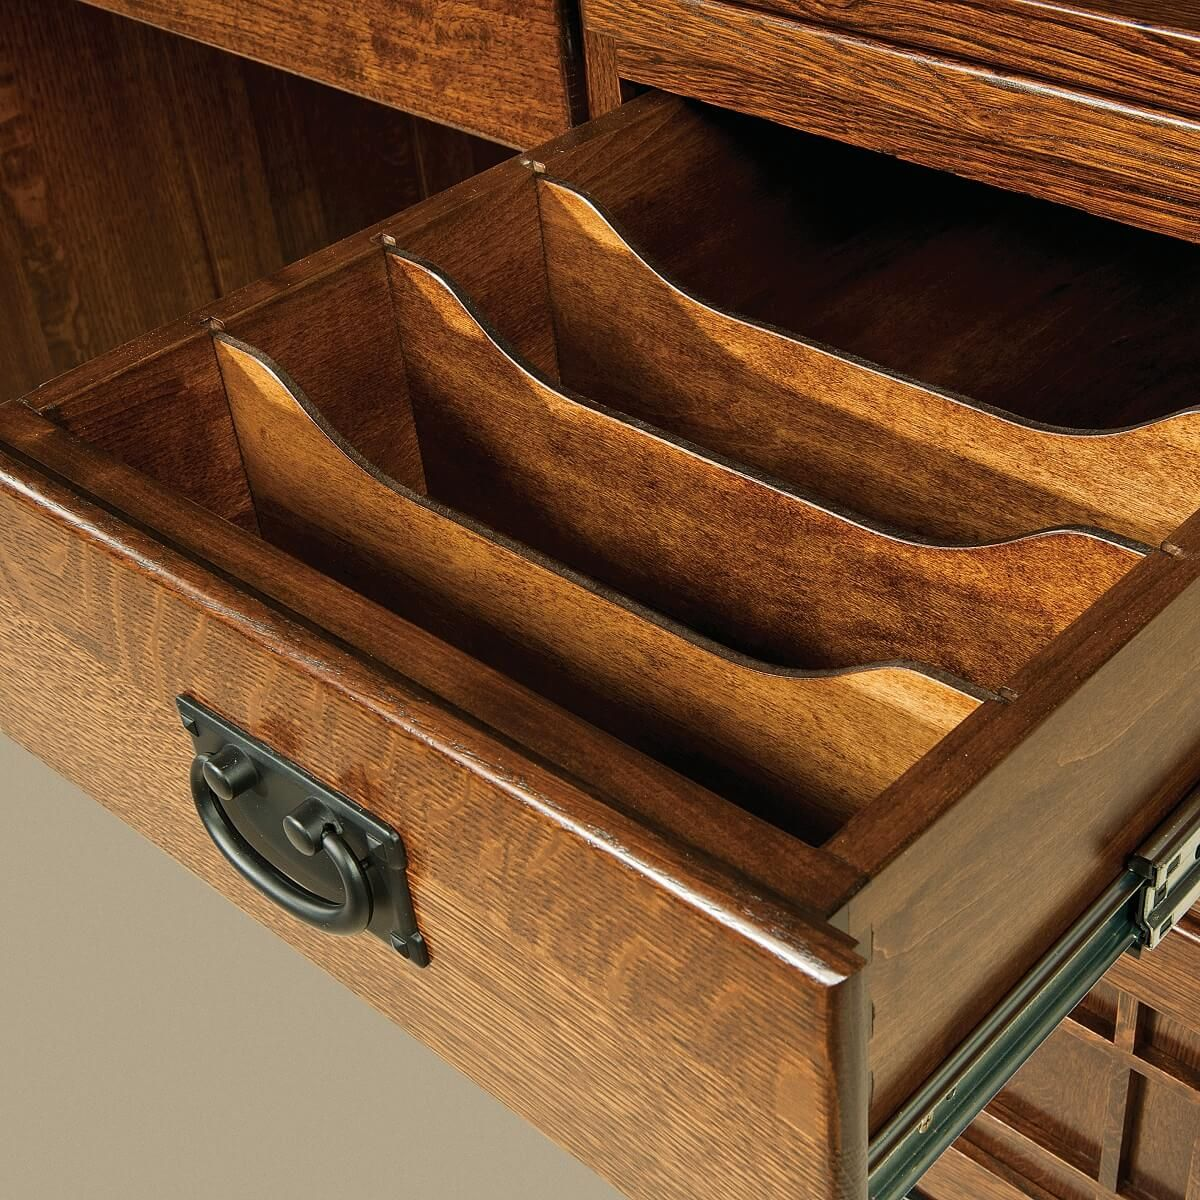 Dividers in Pedestal Drawer